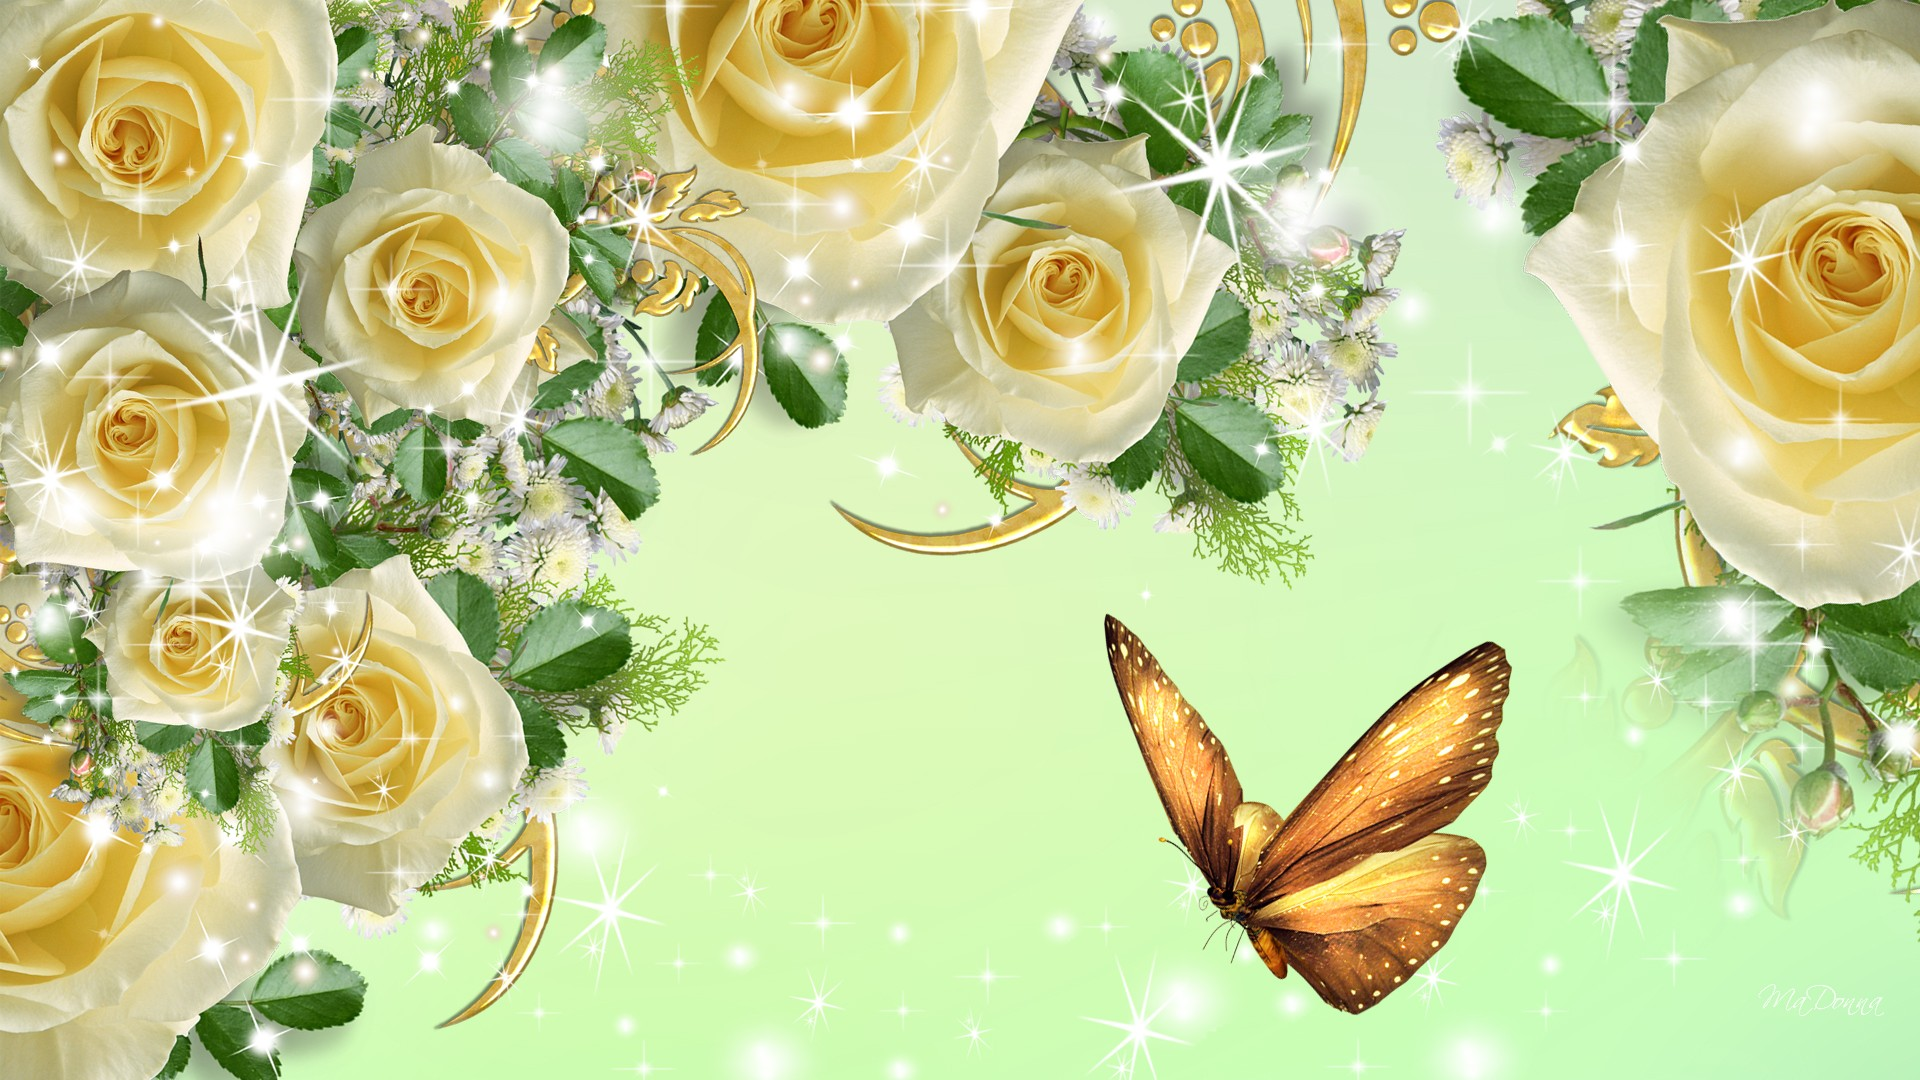 Yellow Rose clipart flower rose wallpaper Flowers Rose Yellow Yellow The